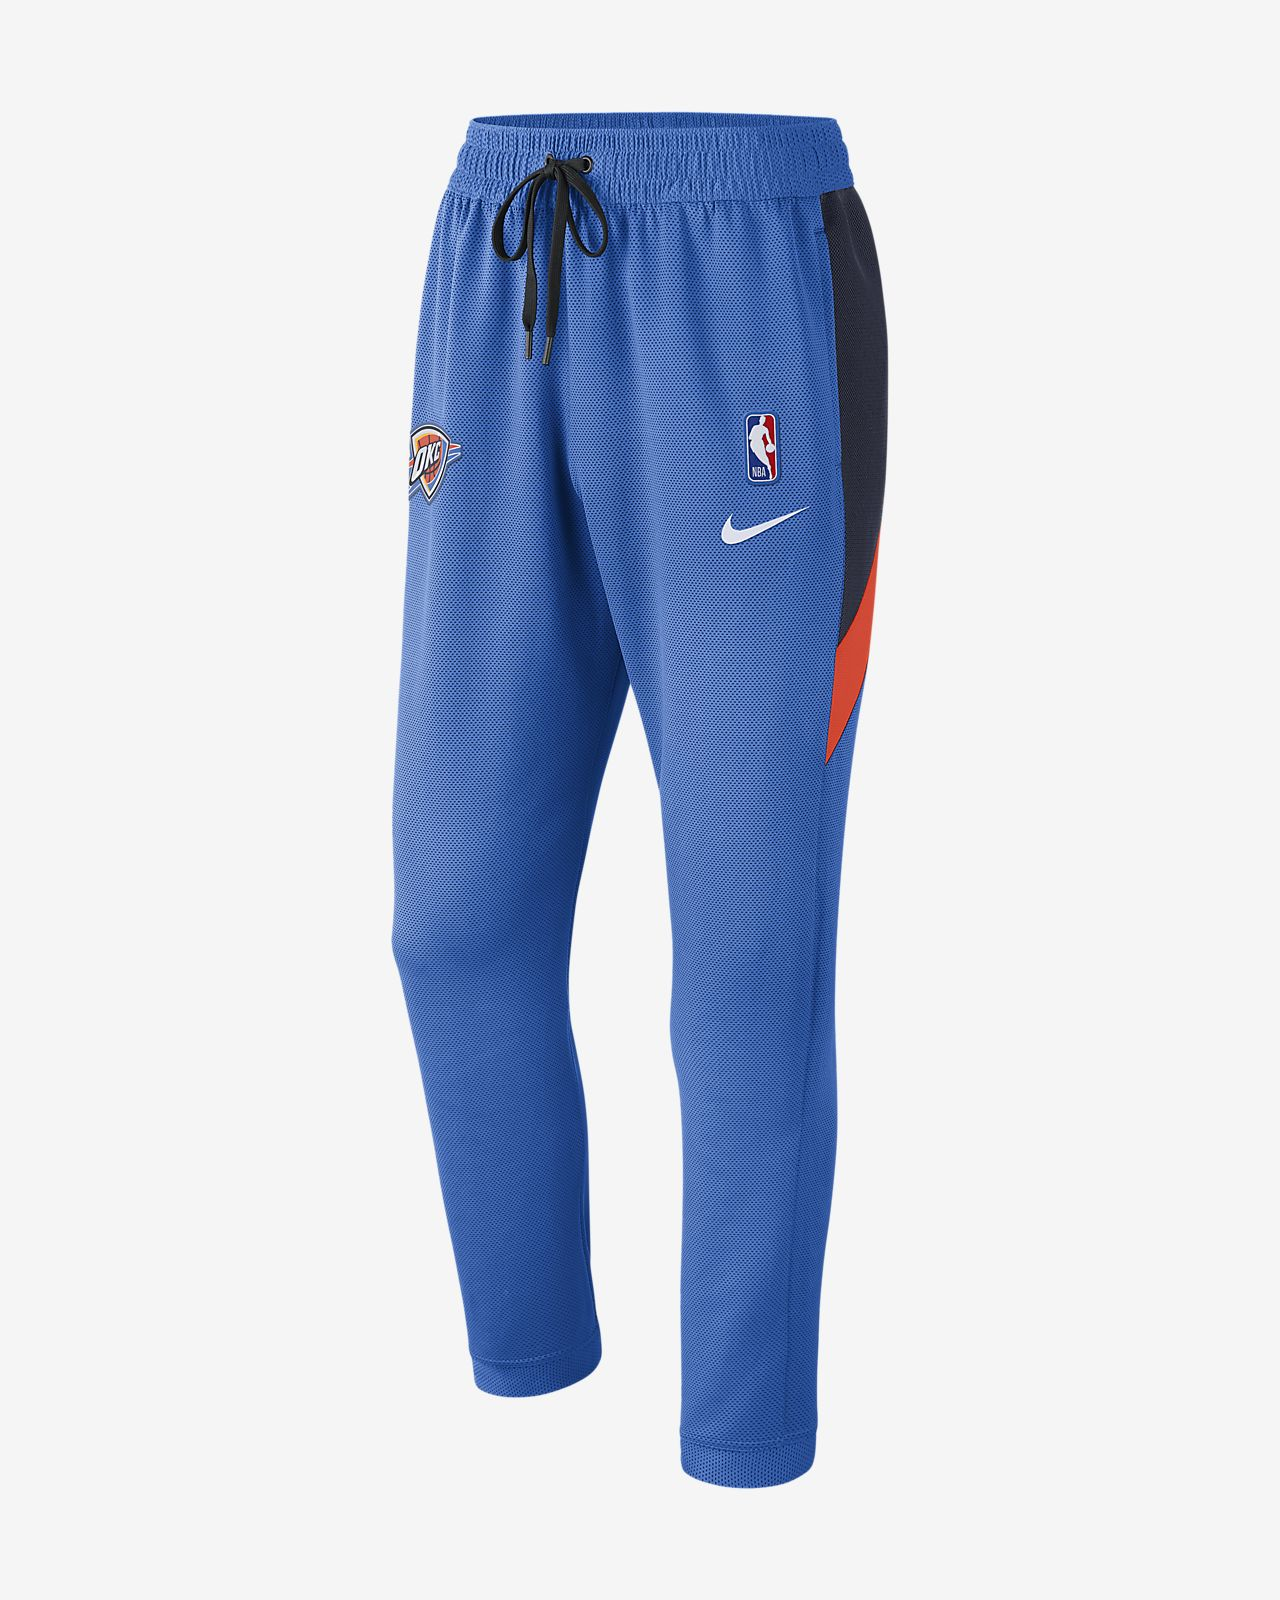 Oklahoma City Thunder Nike Therma Flex Showtime Men's NBA Trousers